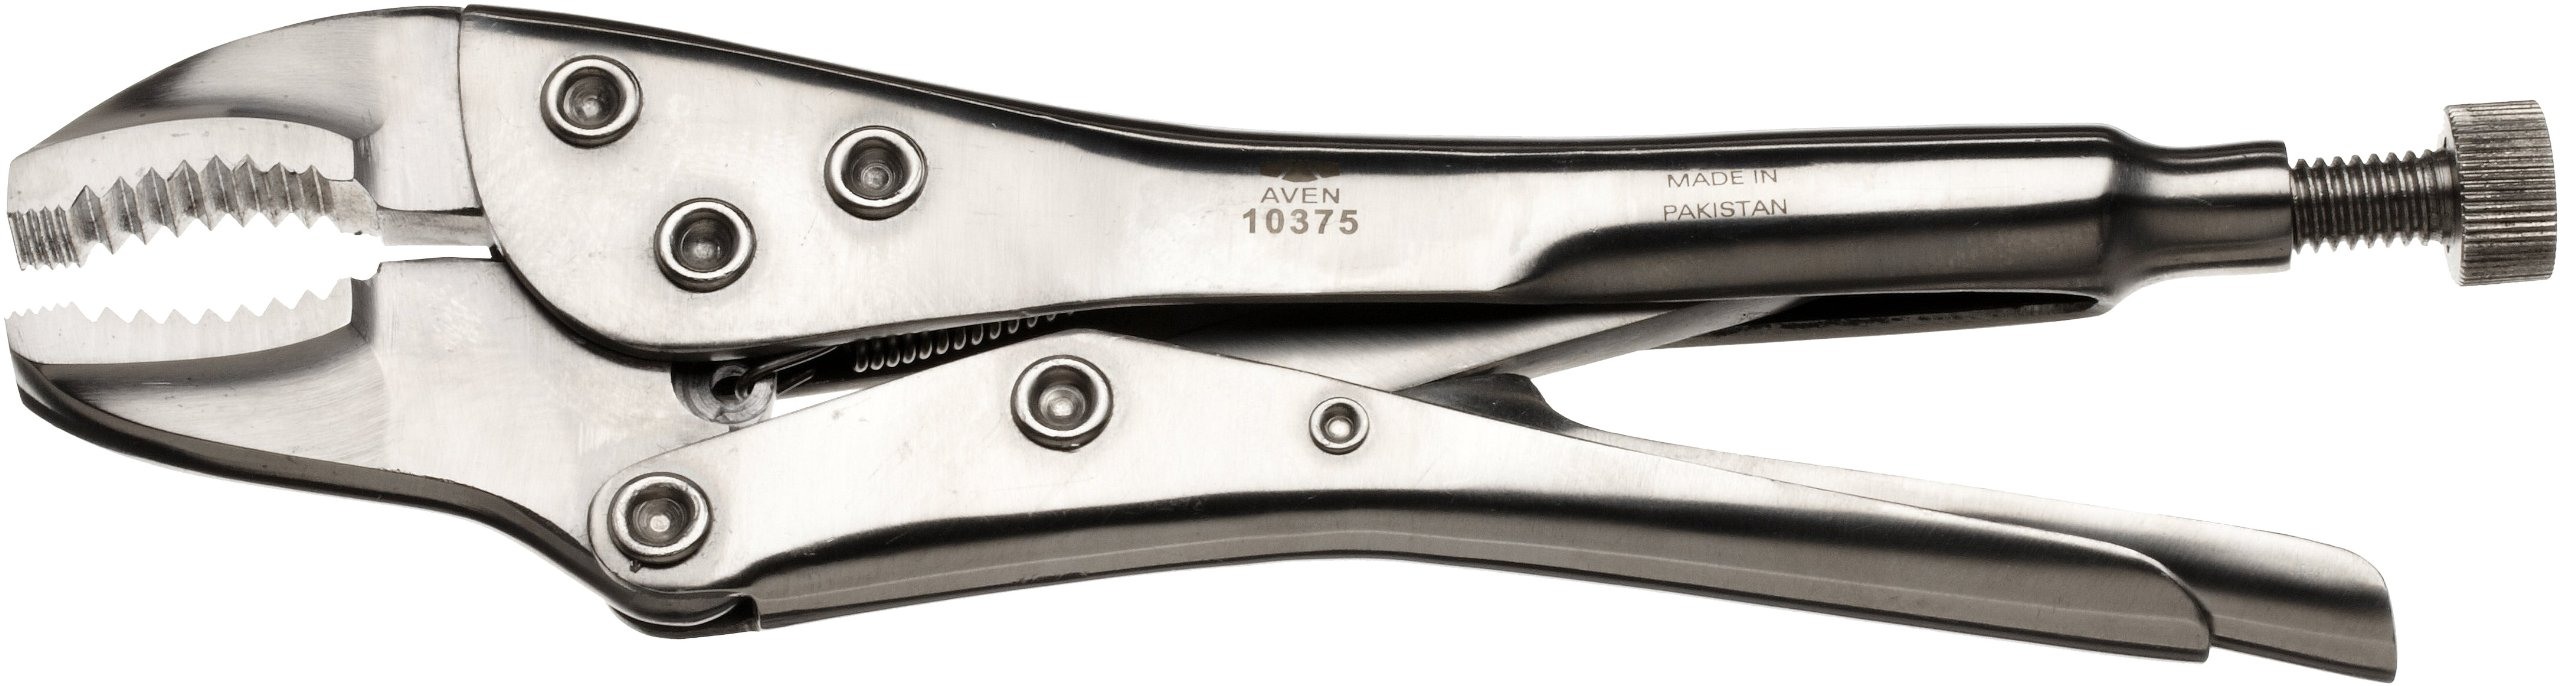 Aven 10375 Stainless Steel Vice Grip Locking Pliers, 7'' by Aven